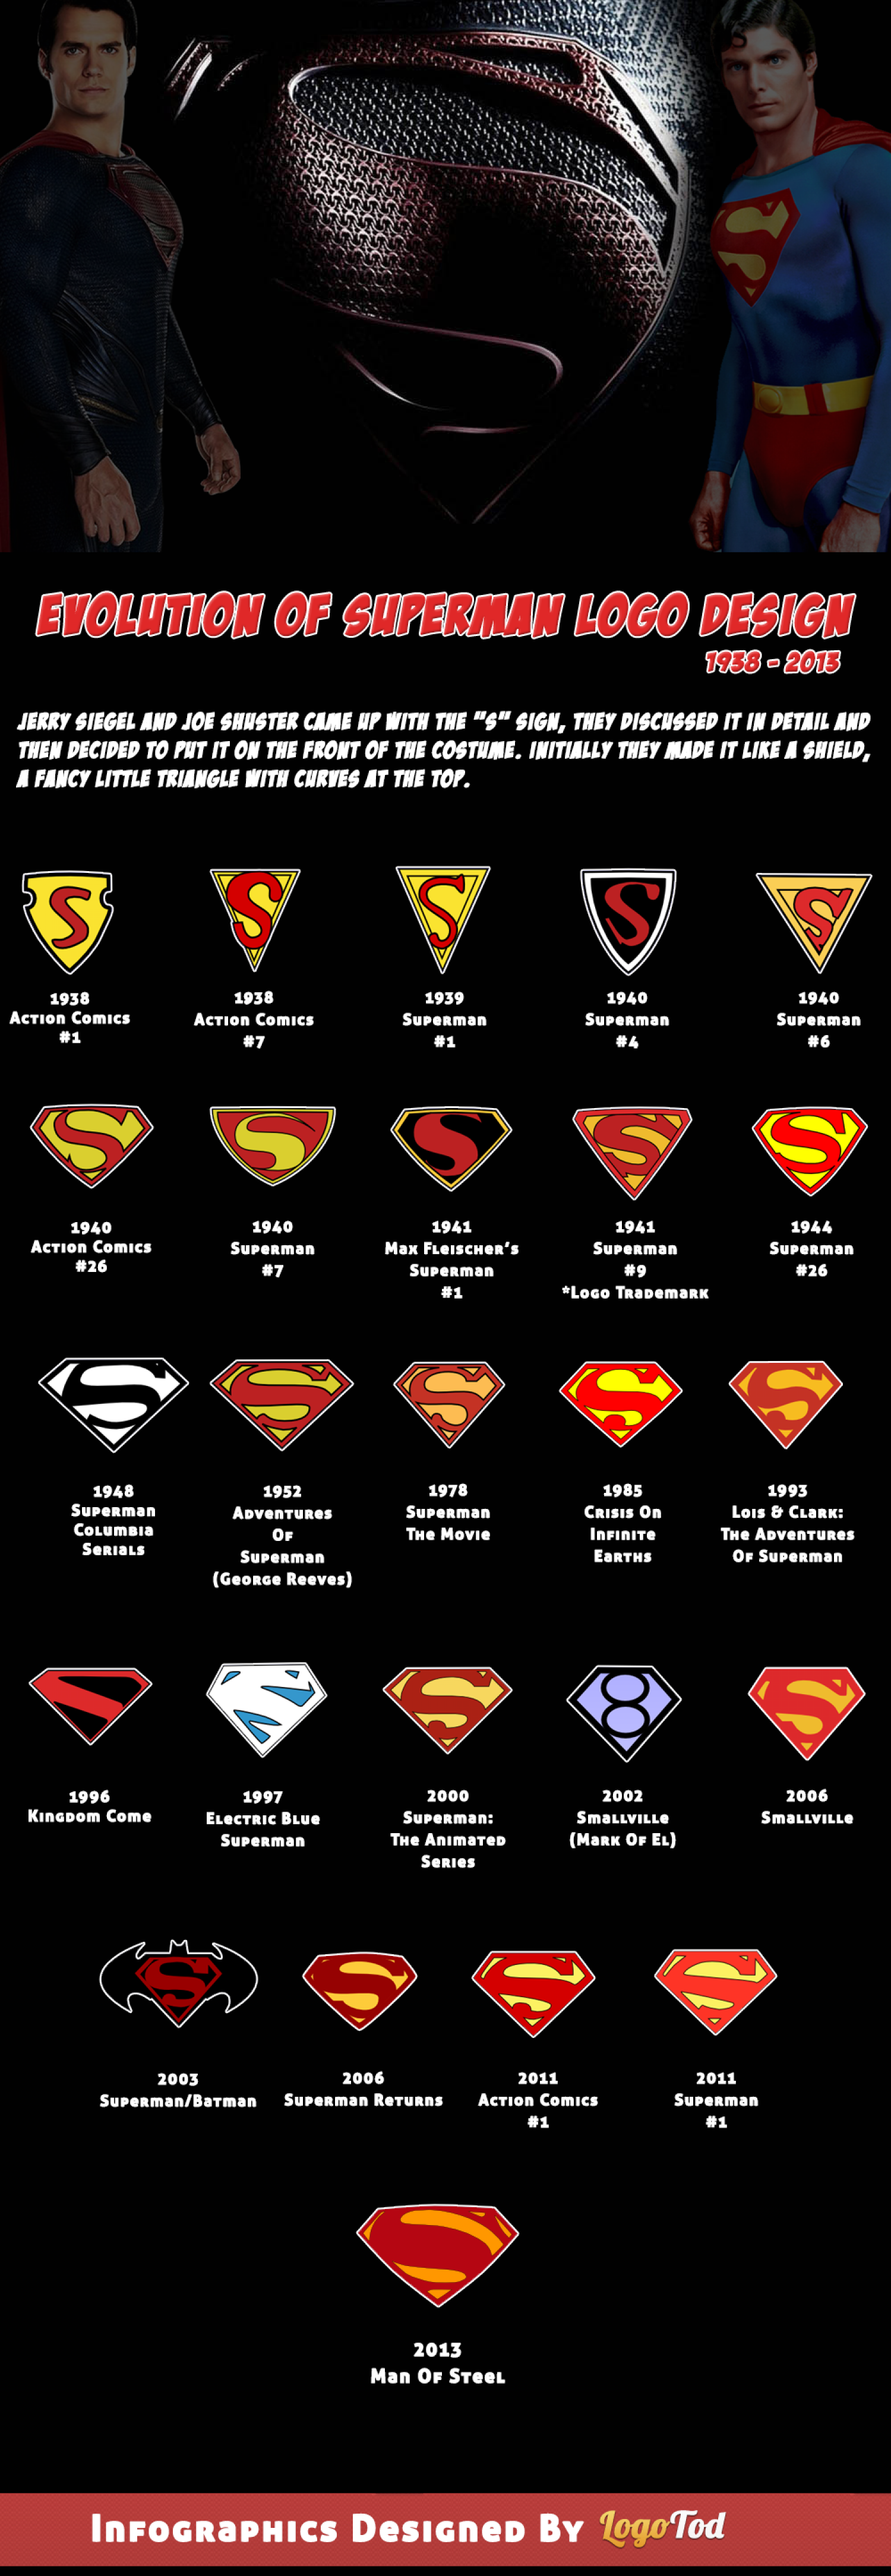 Evolution Of Superman Logo Design Infographic